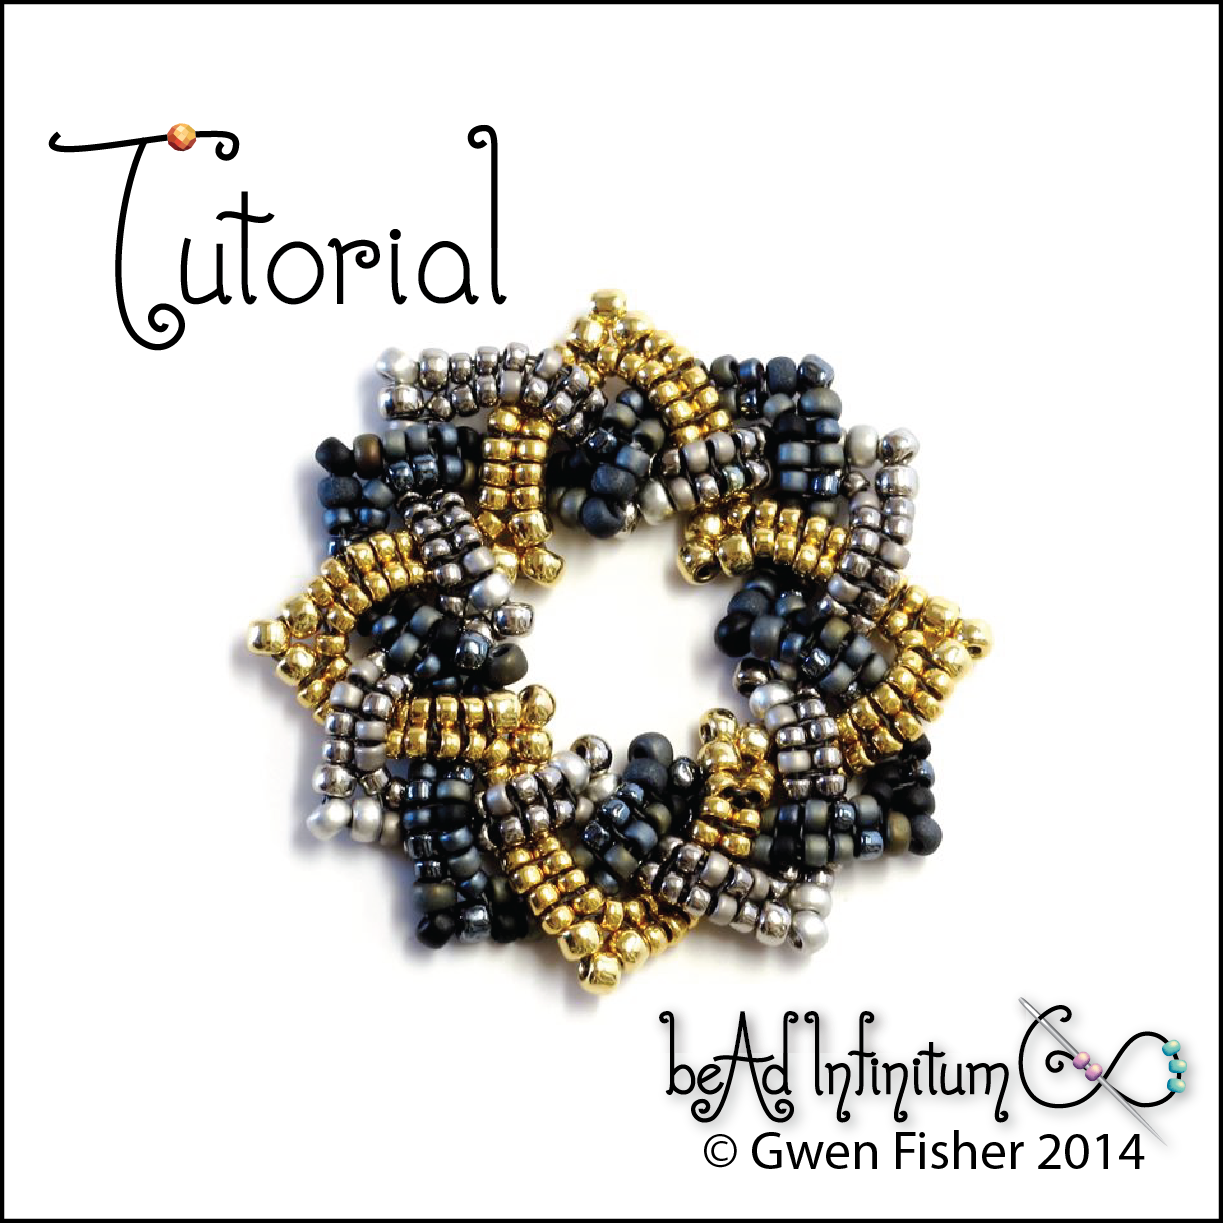 Circular Celtic Knot Pattern with Bead Weaving